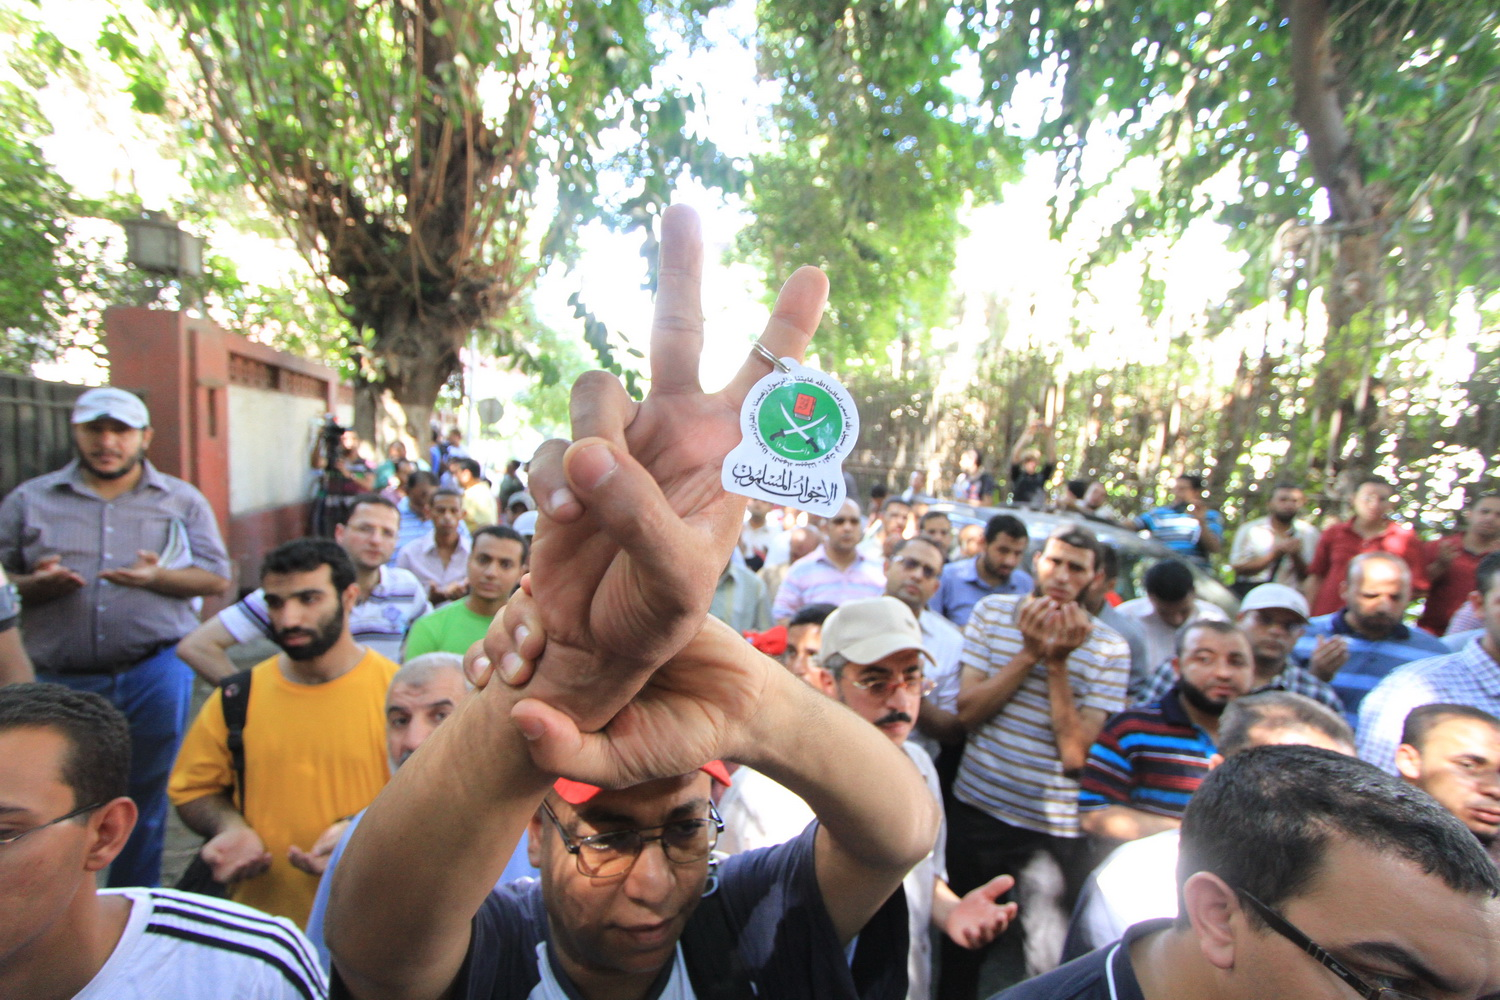 Protester carries a key ring with the Muslim Brotherhood symbol during protests in front of the Syrian embassy in Cairo Mohamed Omar